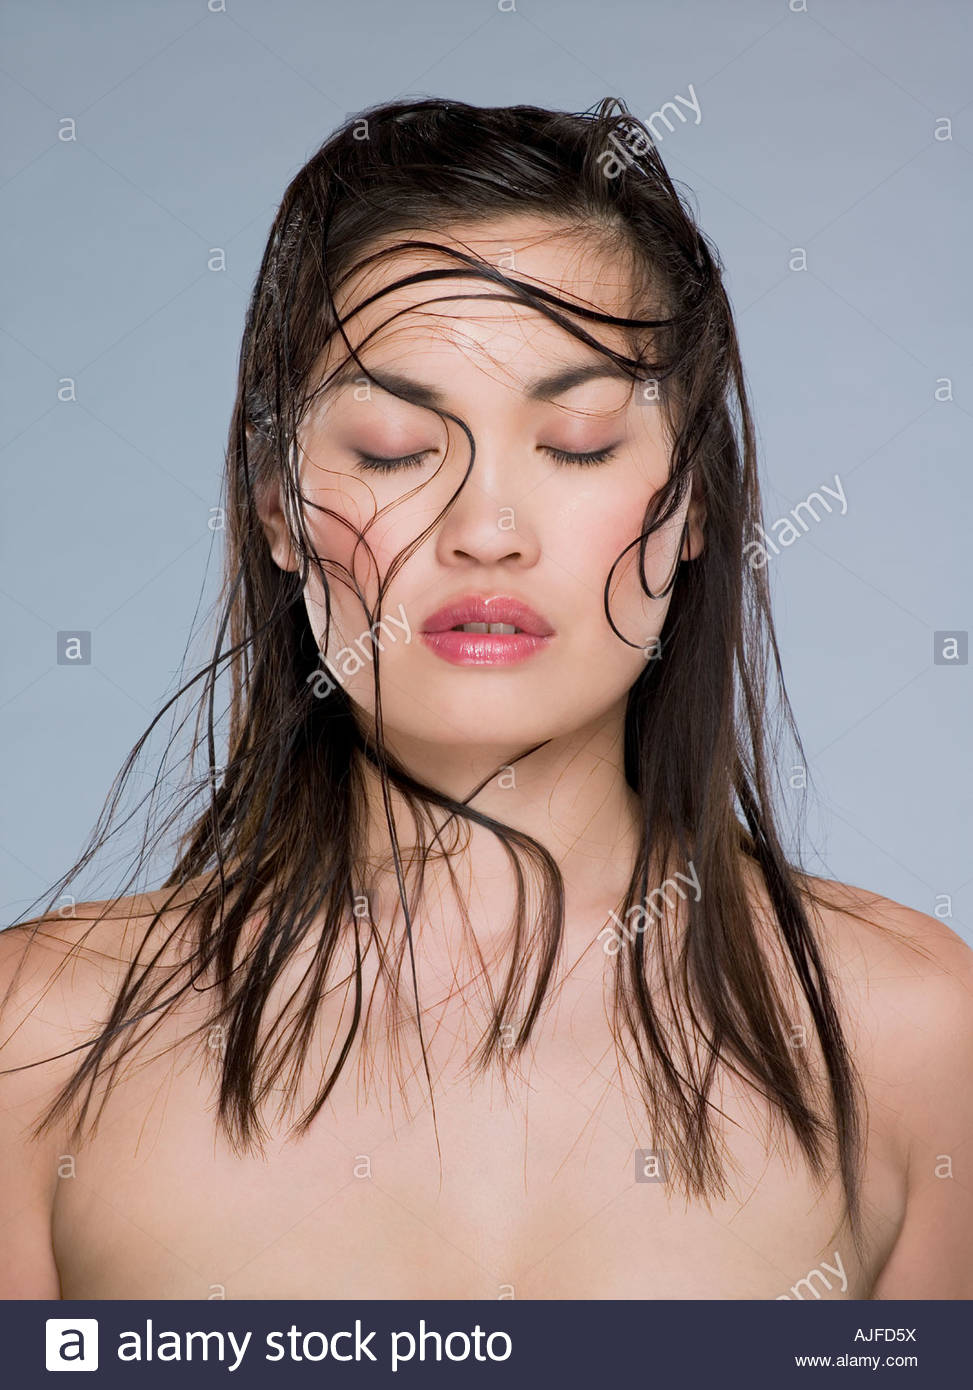 Chinese woman with her eyes closed - Stock Image